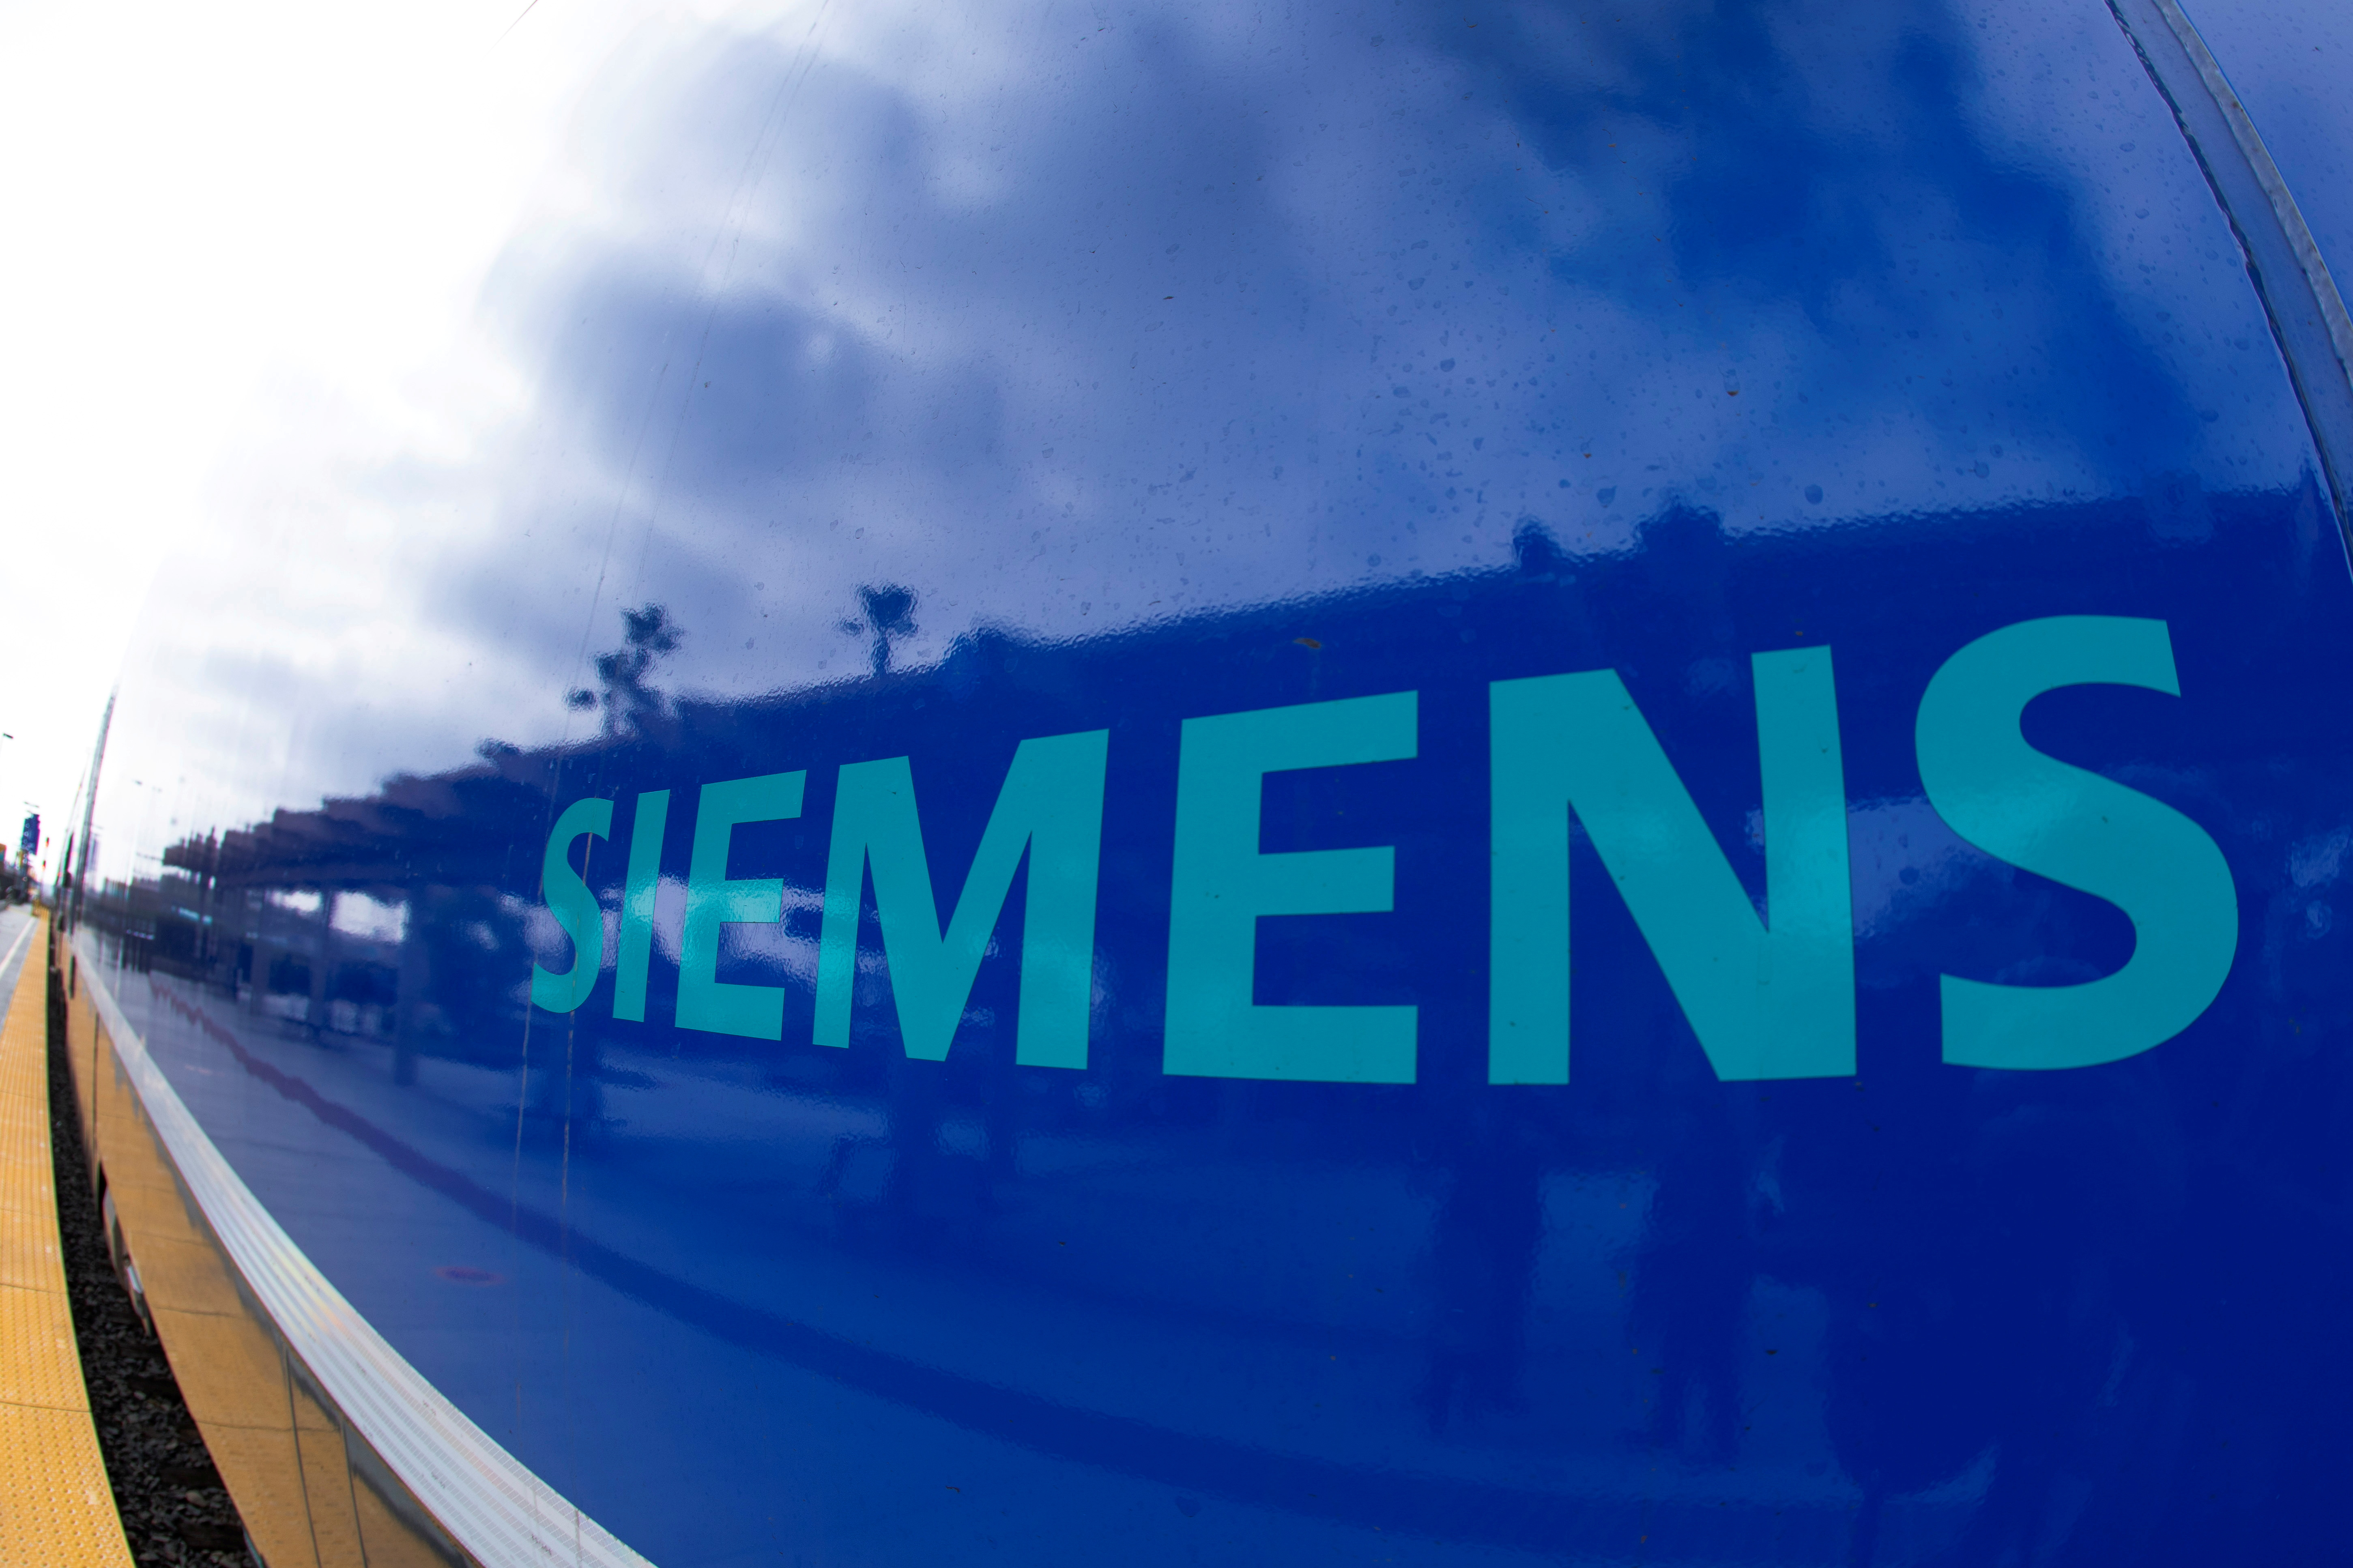 The Siemens logo is shown on a new Siemens Charger locomotive as it comes into service as part of the Coaster Fleet in Oceanside, California, U.S., February 8, 2021. REUTERS/Mike Blake/File Photo